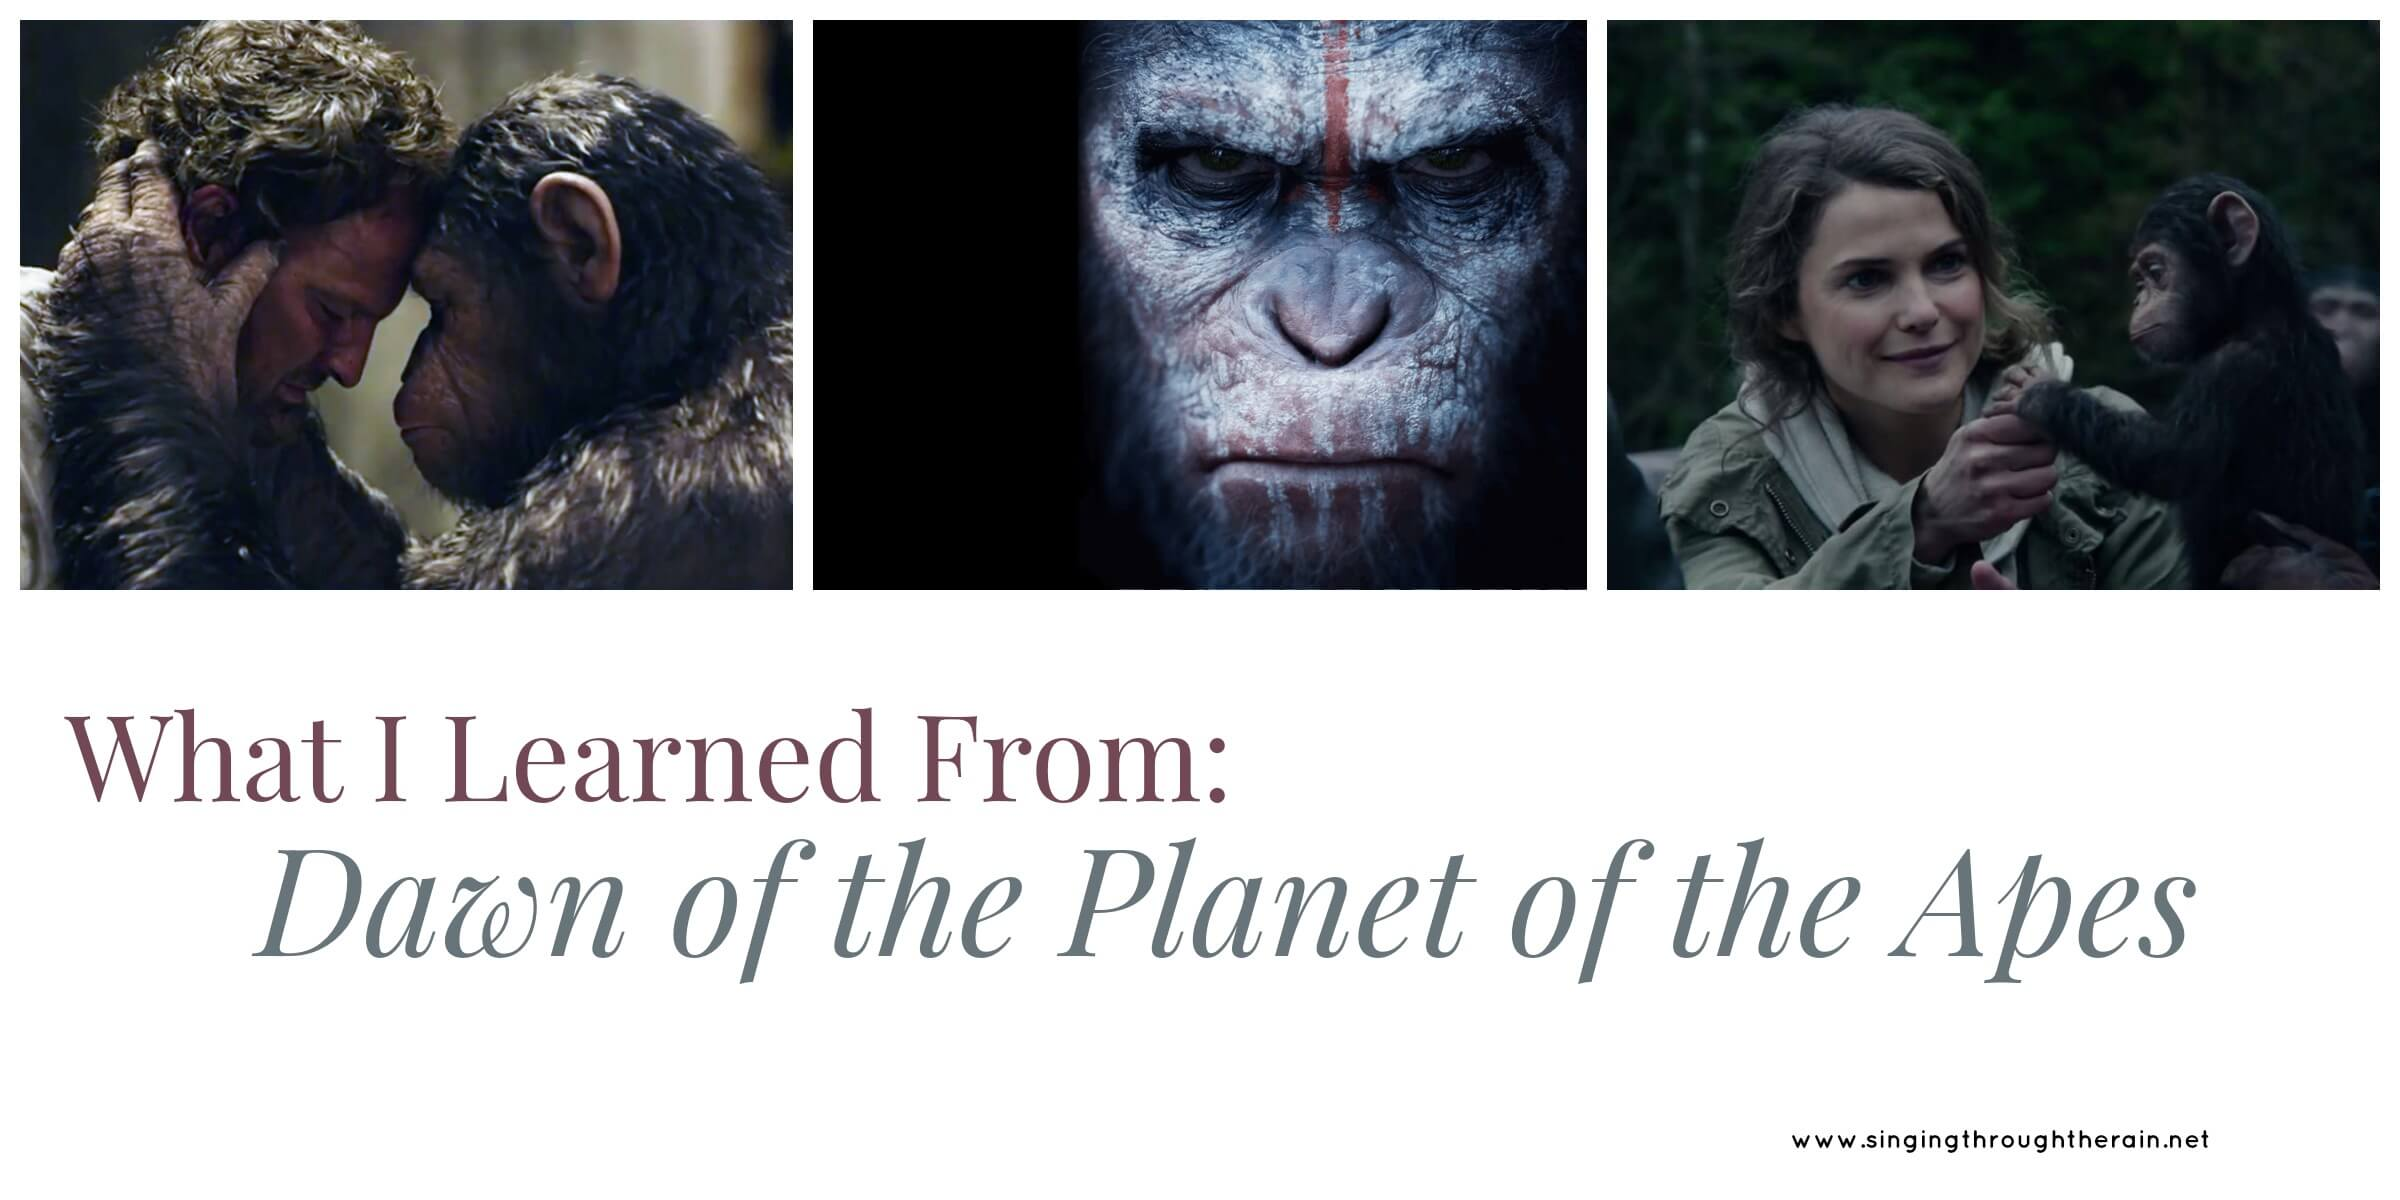 What I Learned From: Dawn Of The Planet Of The Apes